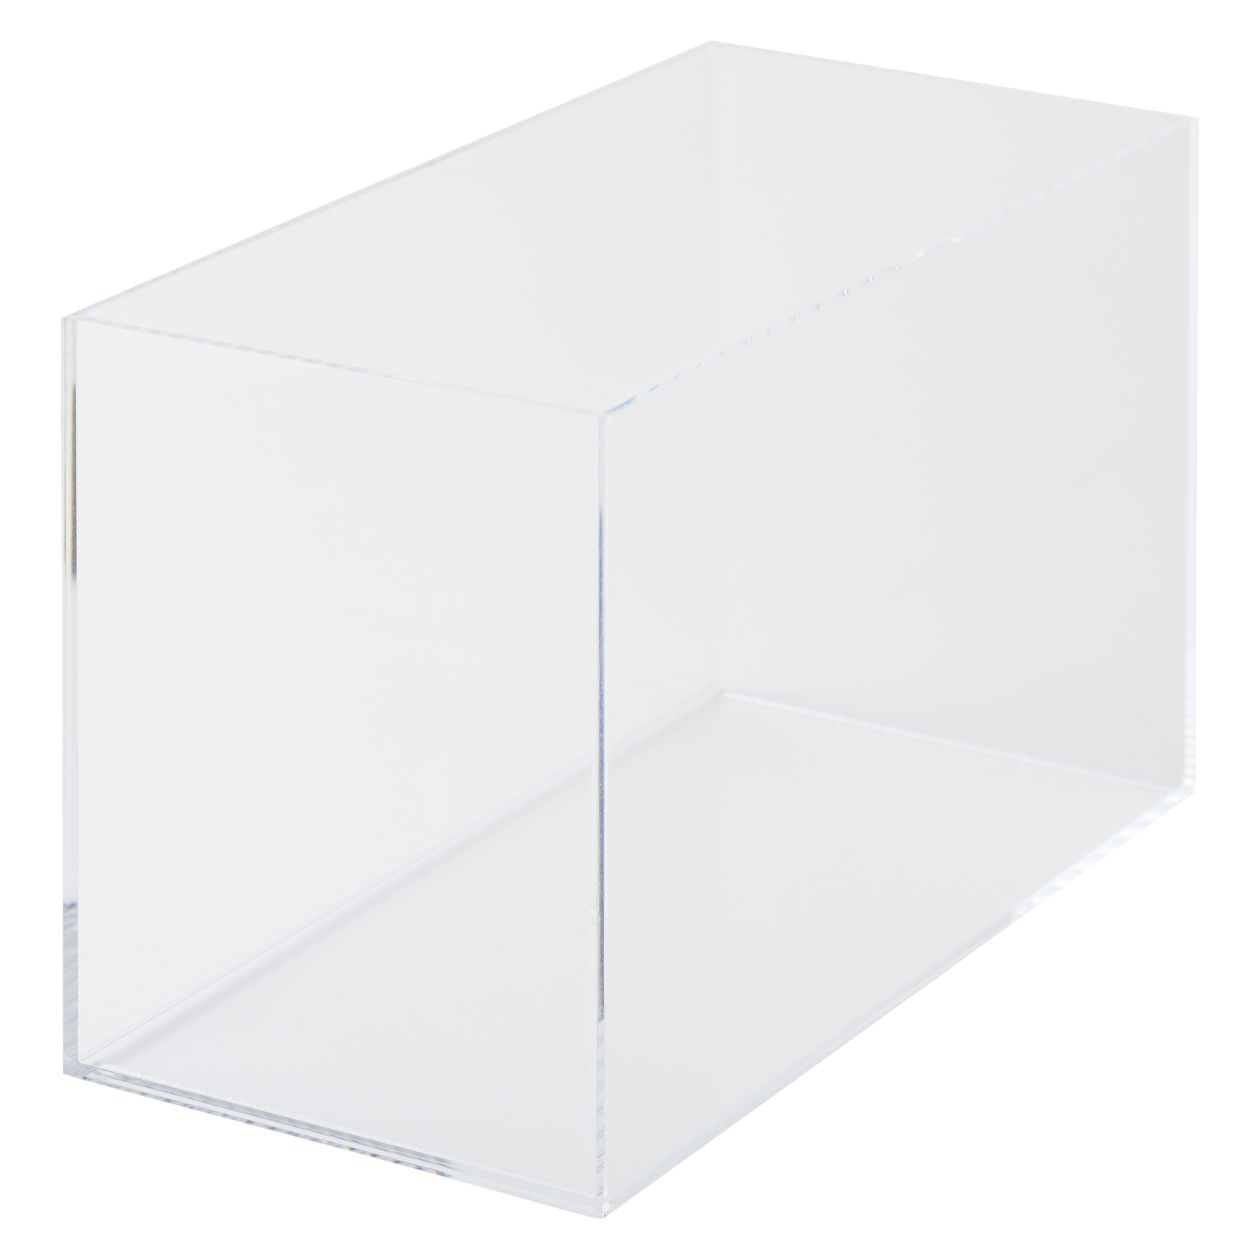 STACKABLE ACRYLIC BOX / L